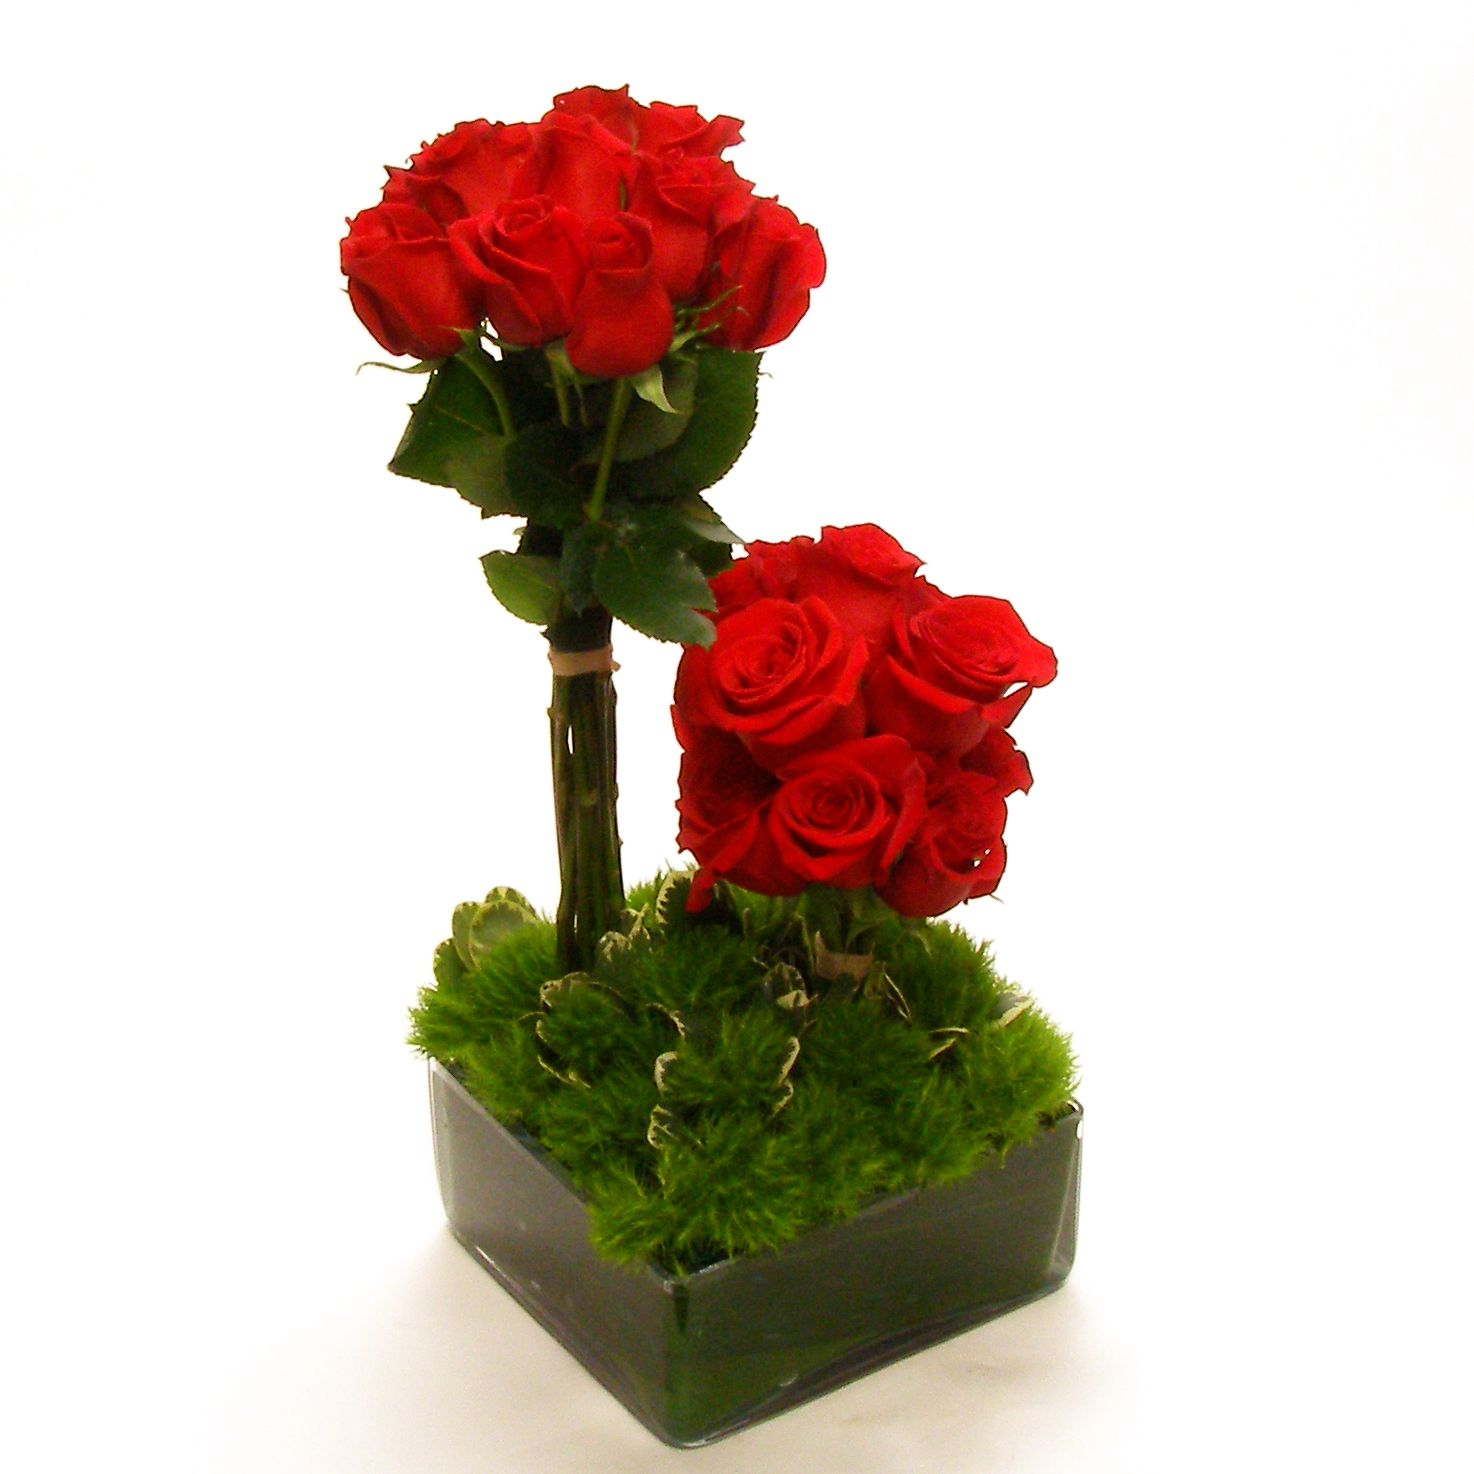 A modern treelike floral arrangement of red roses is a